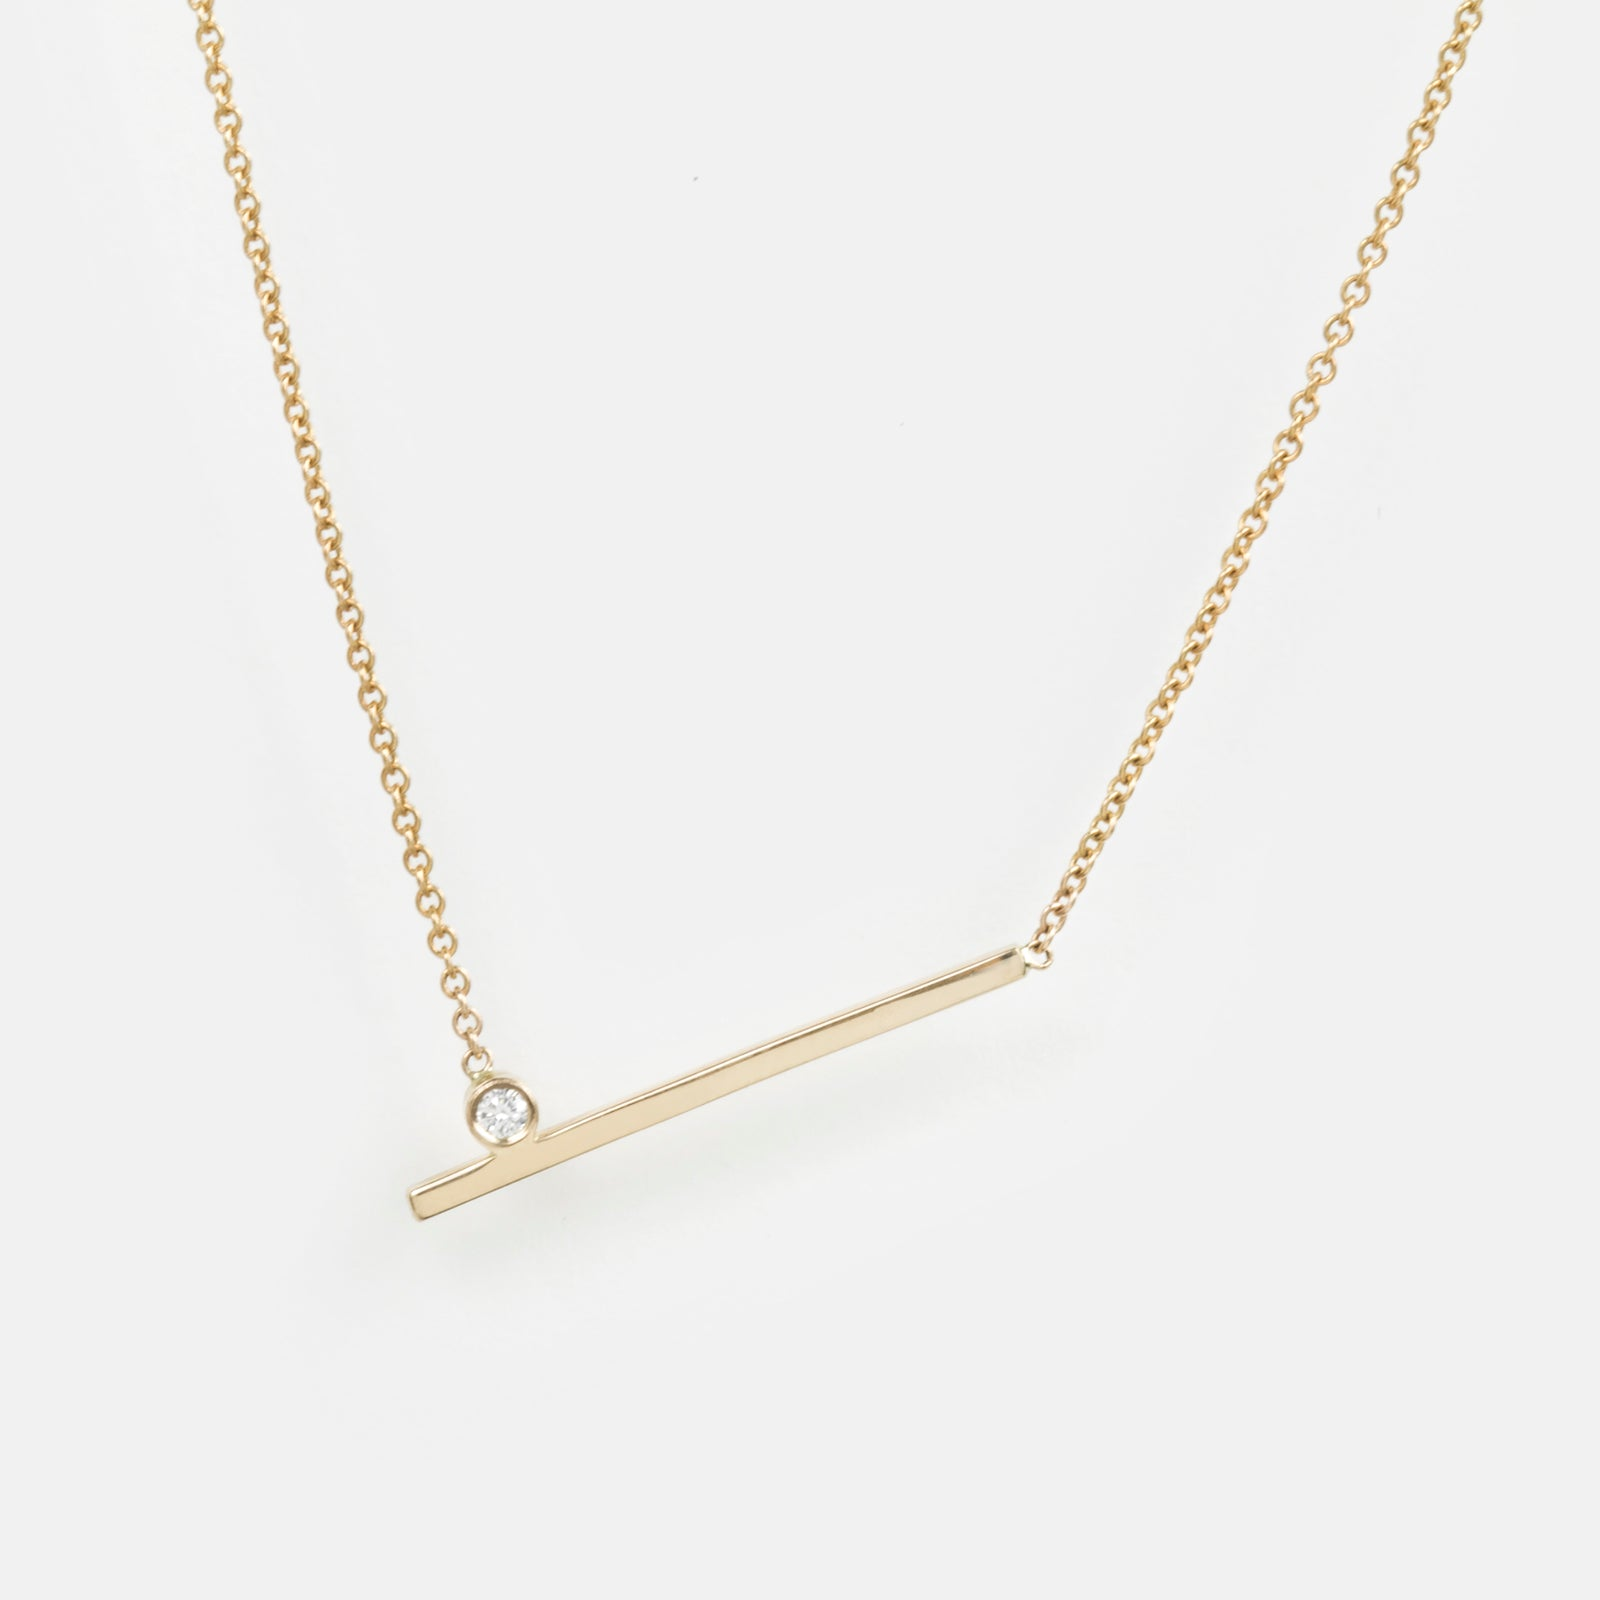 Livi Necklace